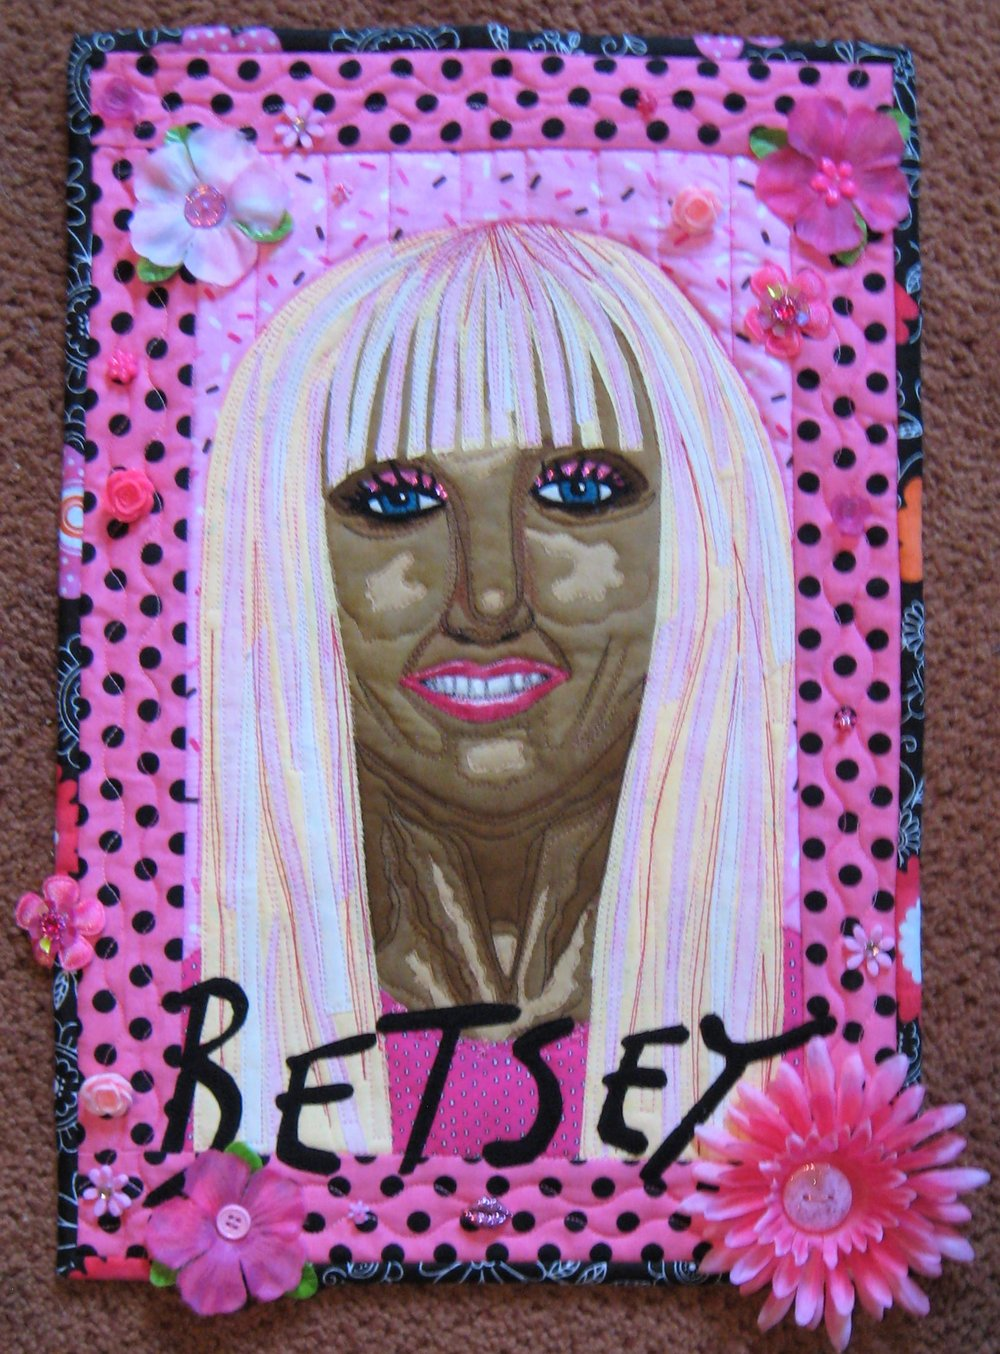 Today is reveal day for my Facebook art quilt group Art Quilts Around The World and the theme was Women Who Soar. That could be literal as in Amelia Earhart or a female pilot/astronaut. I perceived the theme as being inspired by a woman who has soared in her profession or personal life.    I selected the US fashion designer Betsey Johnson because she is my first influence in the 1970s regarding fashion and the fashion industry. I was sewing my own clothes back then in high school and discovered Betsey Johnson Butterick patterns. They had feminine details such as peplums, ruffles, puffy sleeves and bows. I was hooked on the patterns and Betsey's designs!!    Betsey has been a fashion designer for 40+ years and merchandizes clothing, jewelry, purses, eye glass frames, shoes and more. She has inspired me because of her use of hot pink, animal prints, flower/cabbage rose motifs, kissy lips, polka dots often combined with stripes and her use of girly ruffled garments including tutus! I have followed her career for many years and am also inspired by her ability to be a single parent to her daughter Lulu (she's grown now) while running a fashion design house as well as bounce back from financial hard times in 2008 when the financial state of the US was not good. Betsey always seems a bit too tan and she wears fake blond and/or colorful hair extensions while not pretending to be her real hair! She is 70+ years old and still does cartwheels after her showing at Fashion Week in New York City. I admire her zest for life and her ability to not have rules about ones age!! She seems to be having fun!   When I was choosing colors I used Betsey's signature hot pink  color which is on her merchandise labels, a variety of polka dot fabrics and as many pink rose and flower motifs from my embellishment stash. It is pink paradise and a tool to use when I teach about monochromatic color schemes!! I feel I can get crazy with a lot of embellishments if I stay in the same color family. I added Betsey's name in the font she uses on her merchandise-it's probably her own penmanship. All in all a fun challenge which was easy to do. Go Betsey and do not retire anytime soon!!